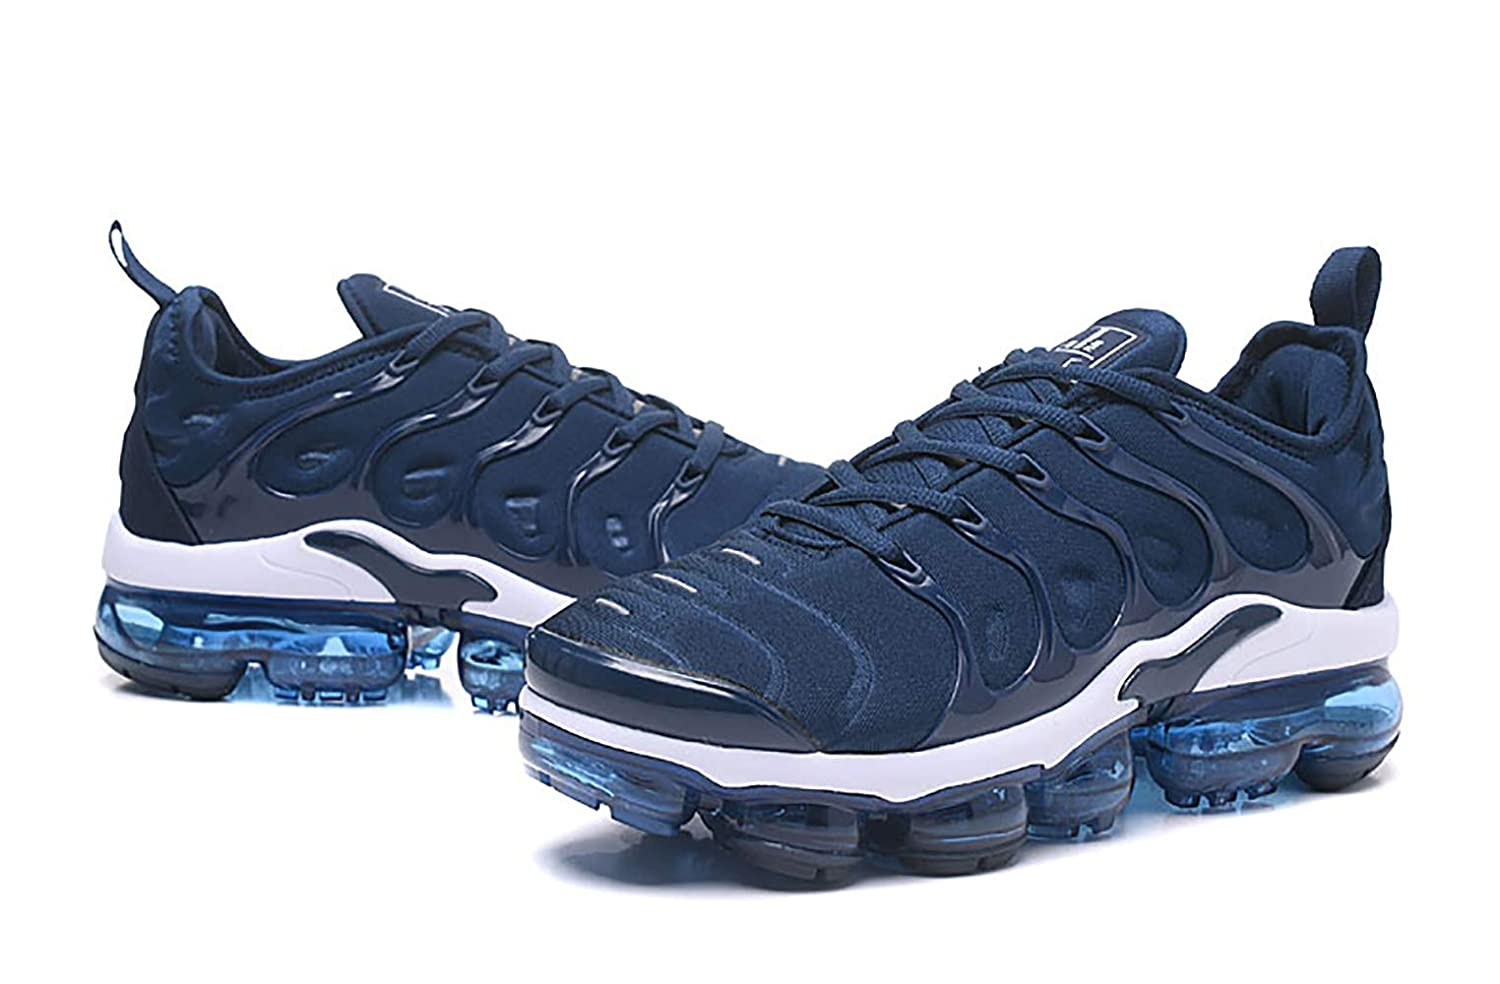 6a45aec942 Amazon.com | RUNSHOT Men's Air Vapormax Plus TN Running Shoe Basketball  Shoes -Dark Blue White | Fashion Sneakers